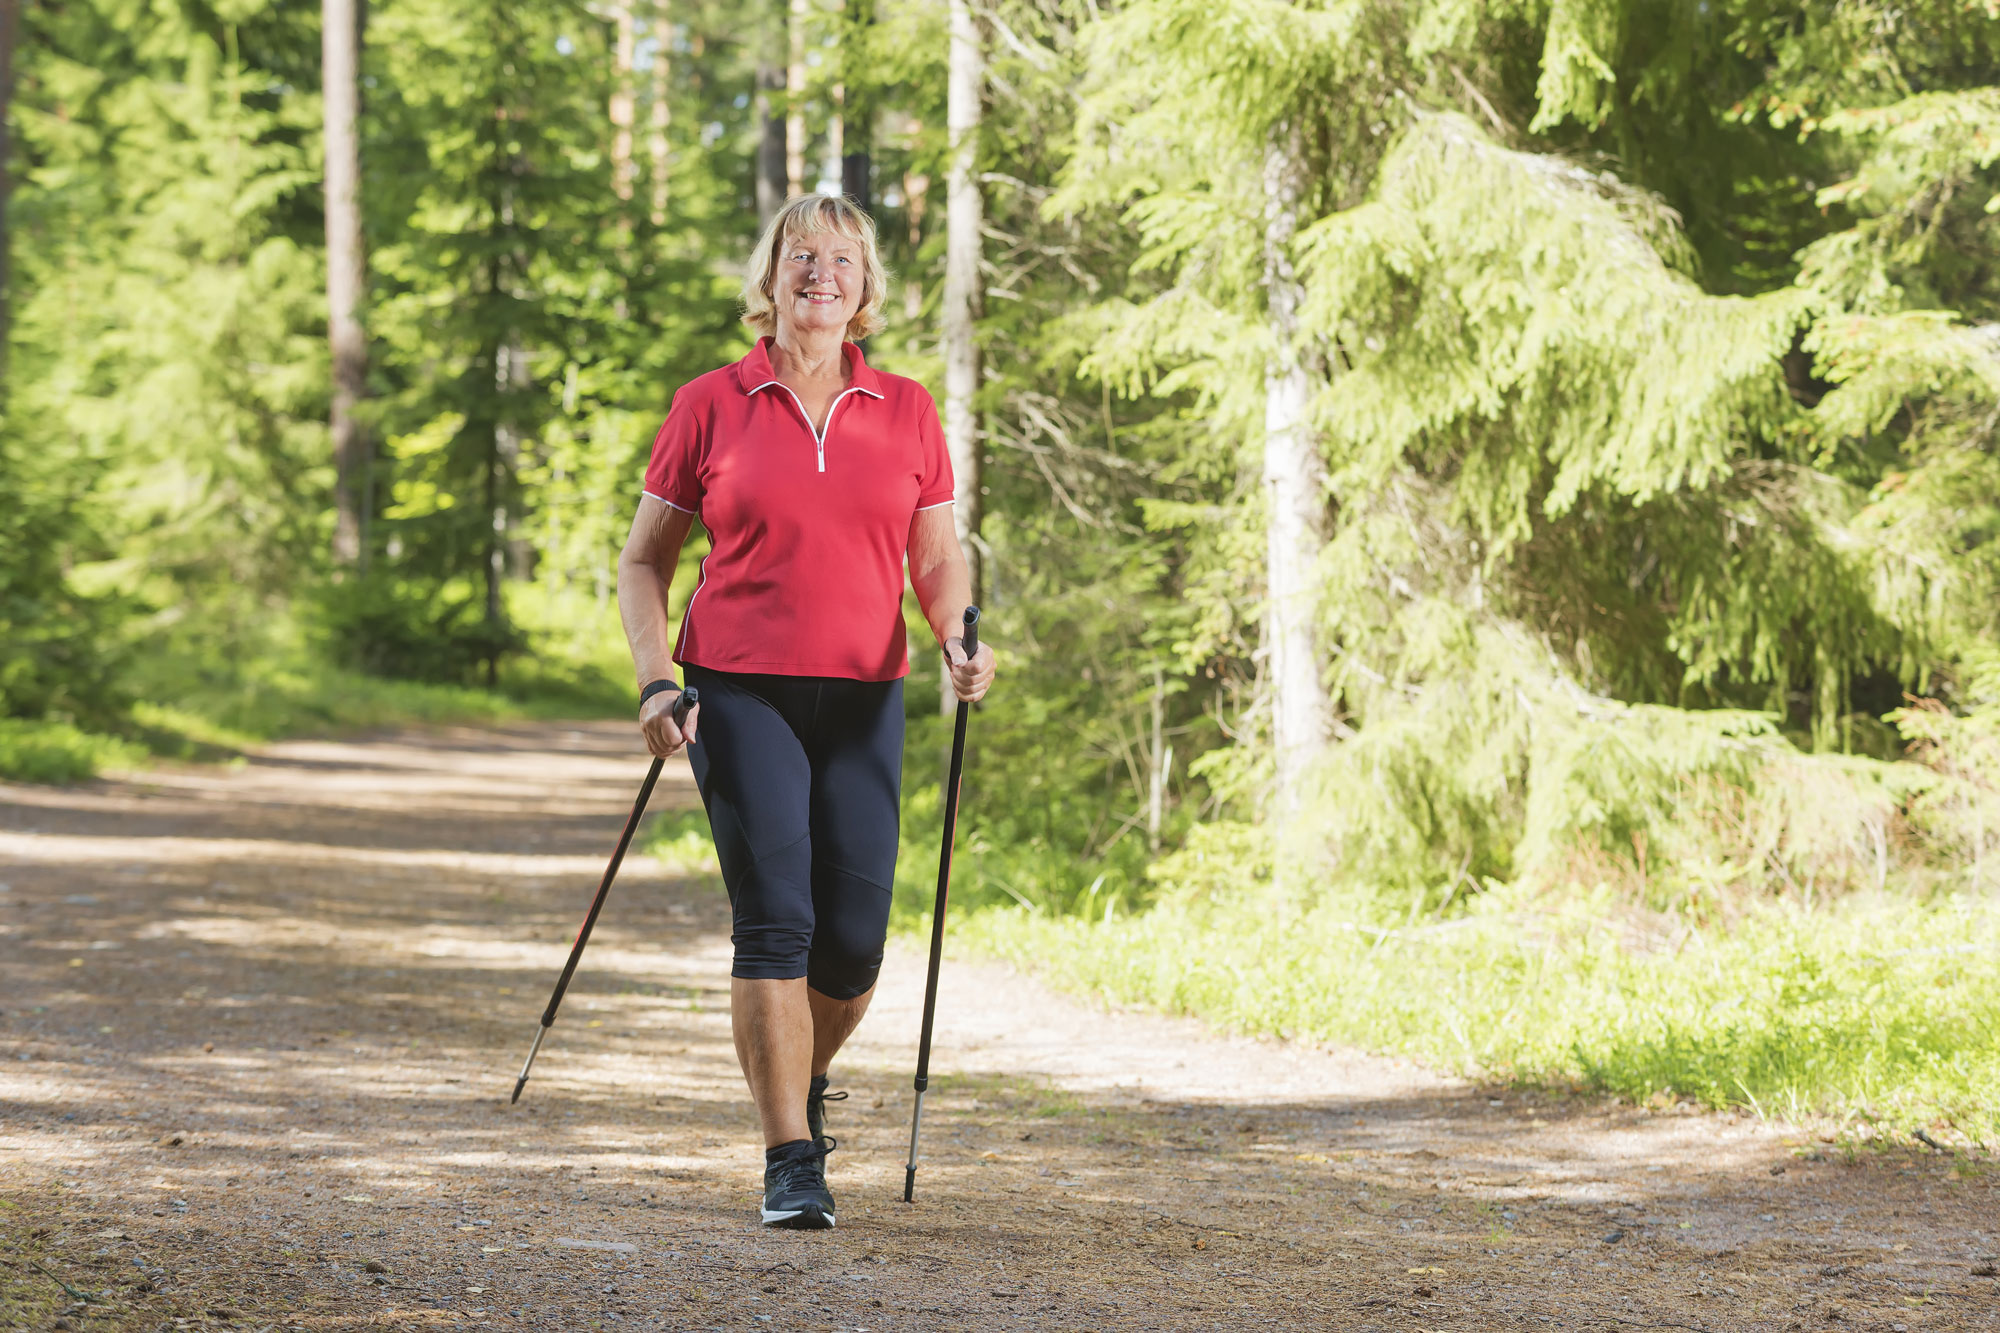 pain-friendly hobbies, 5 Pain-Friendly Hobbies for Any Age